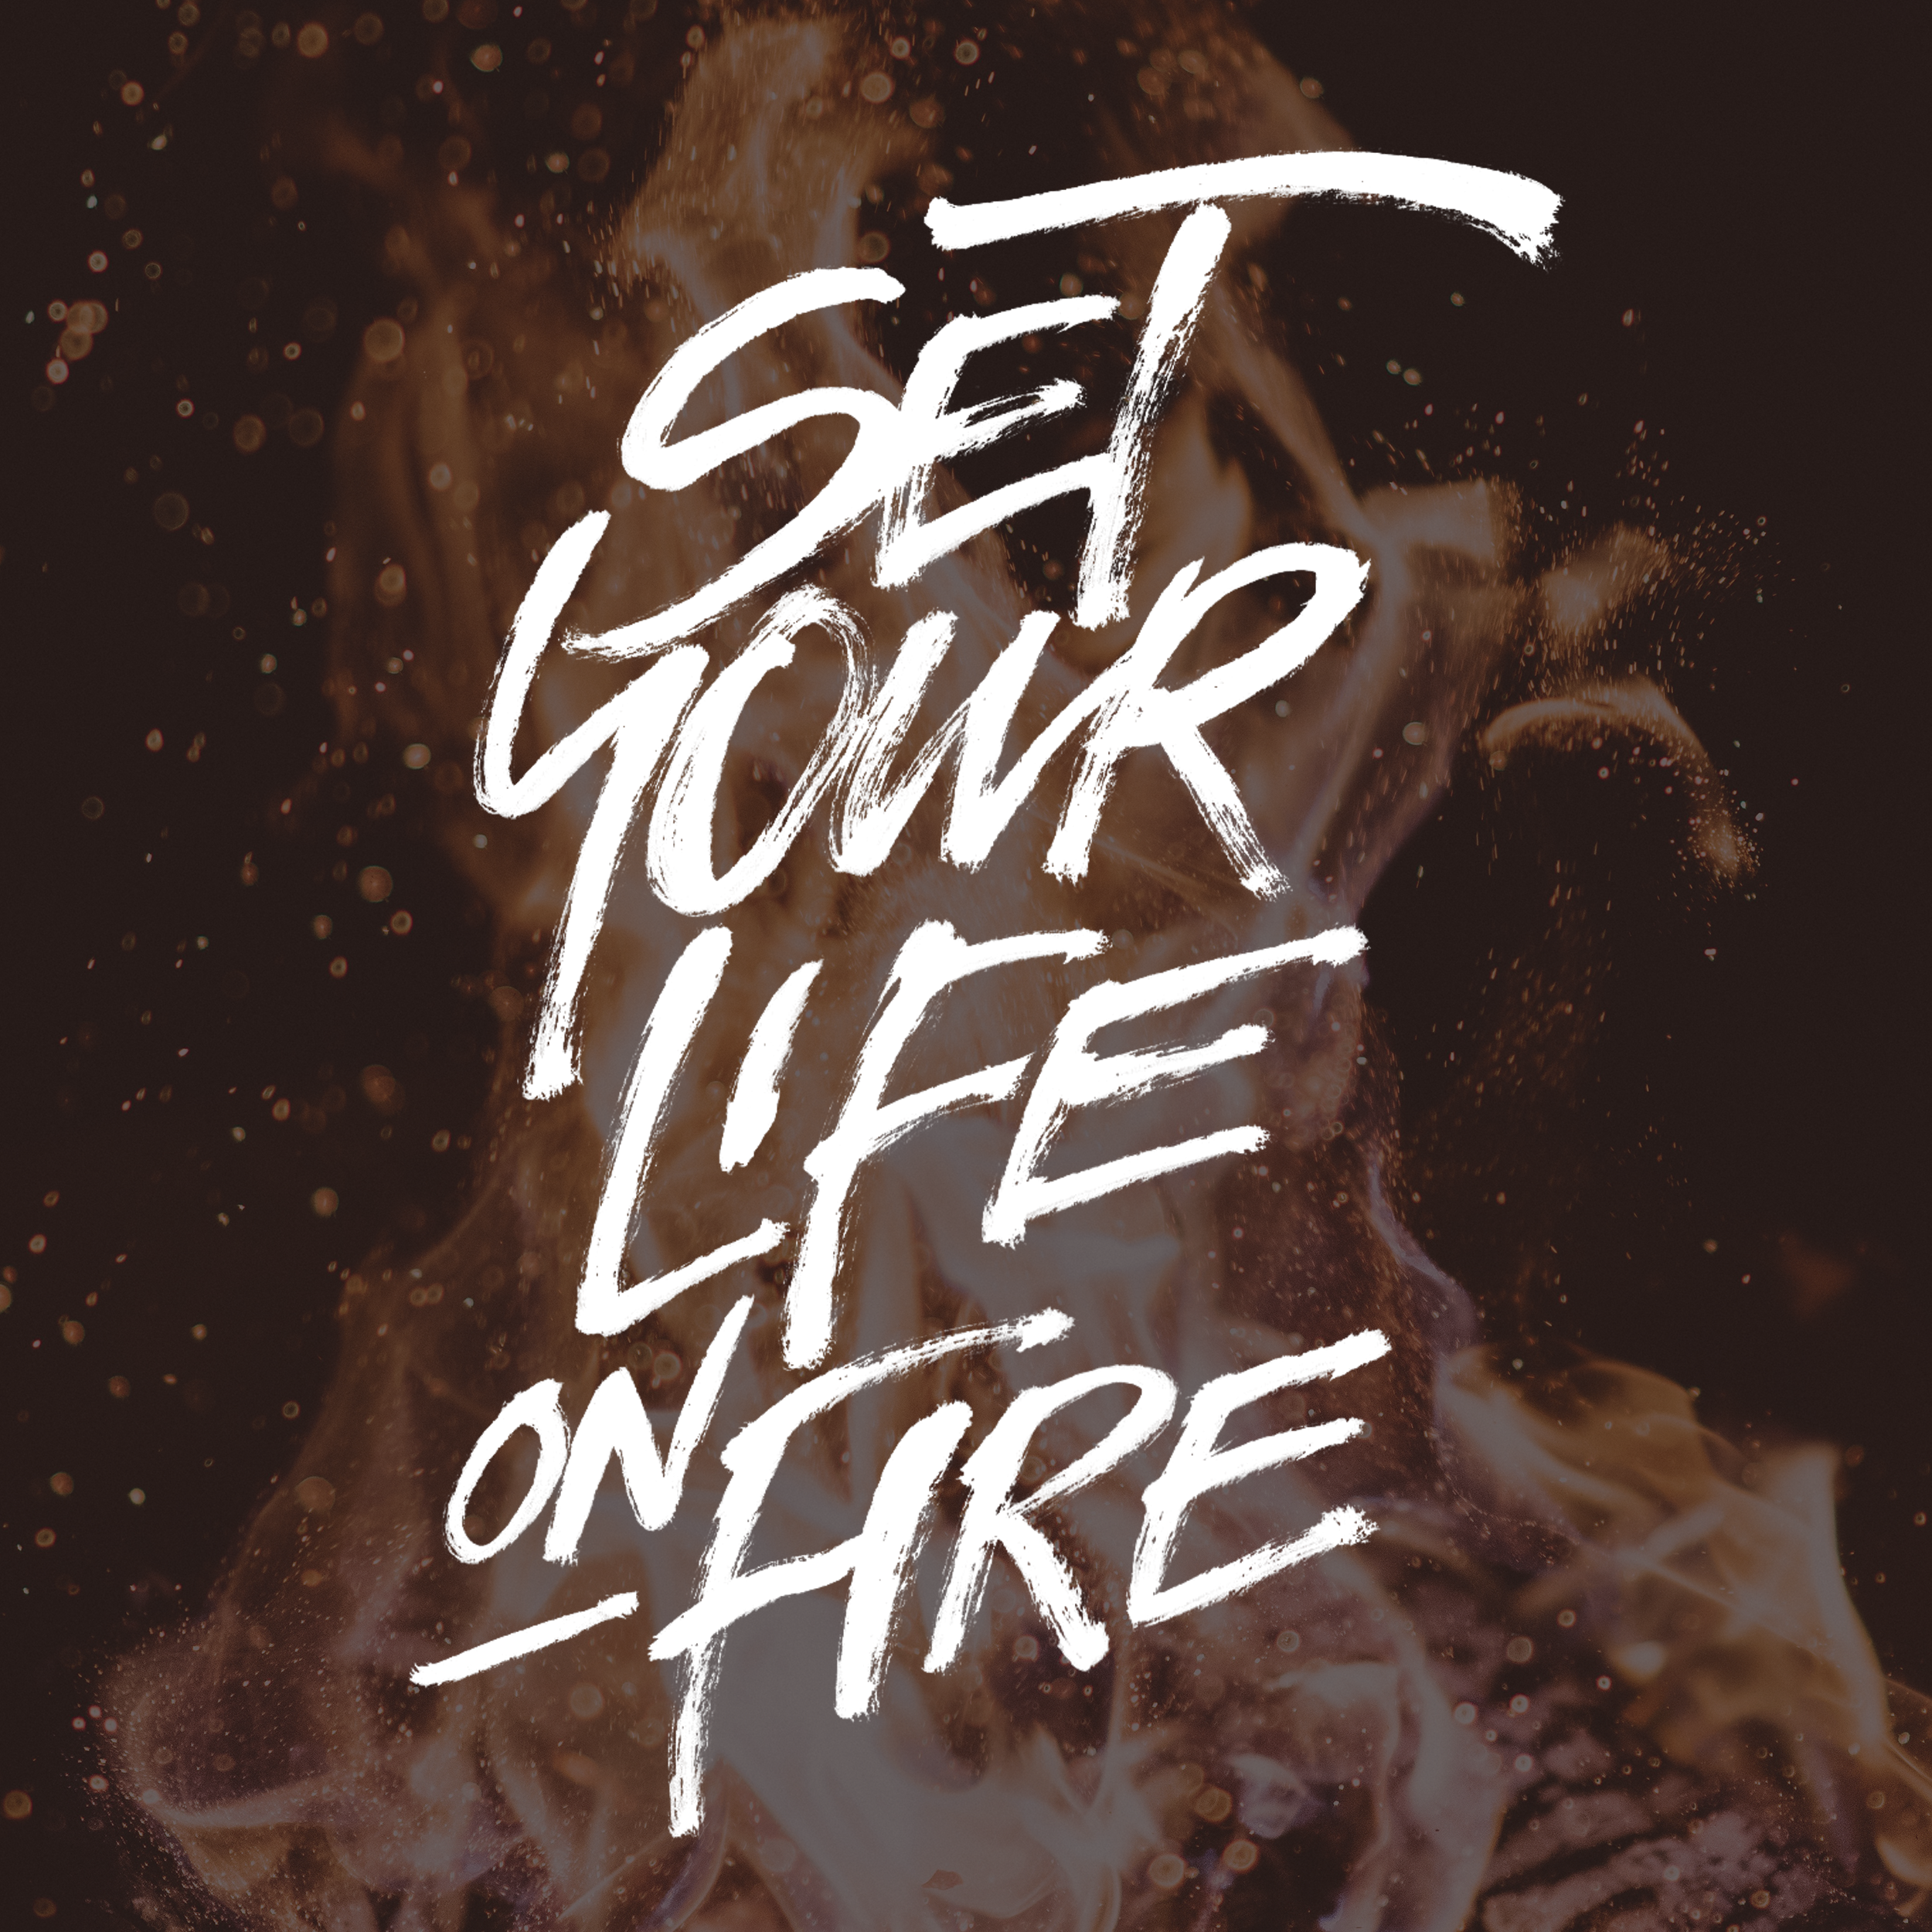 set your life on fire by john suder.png